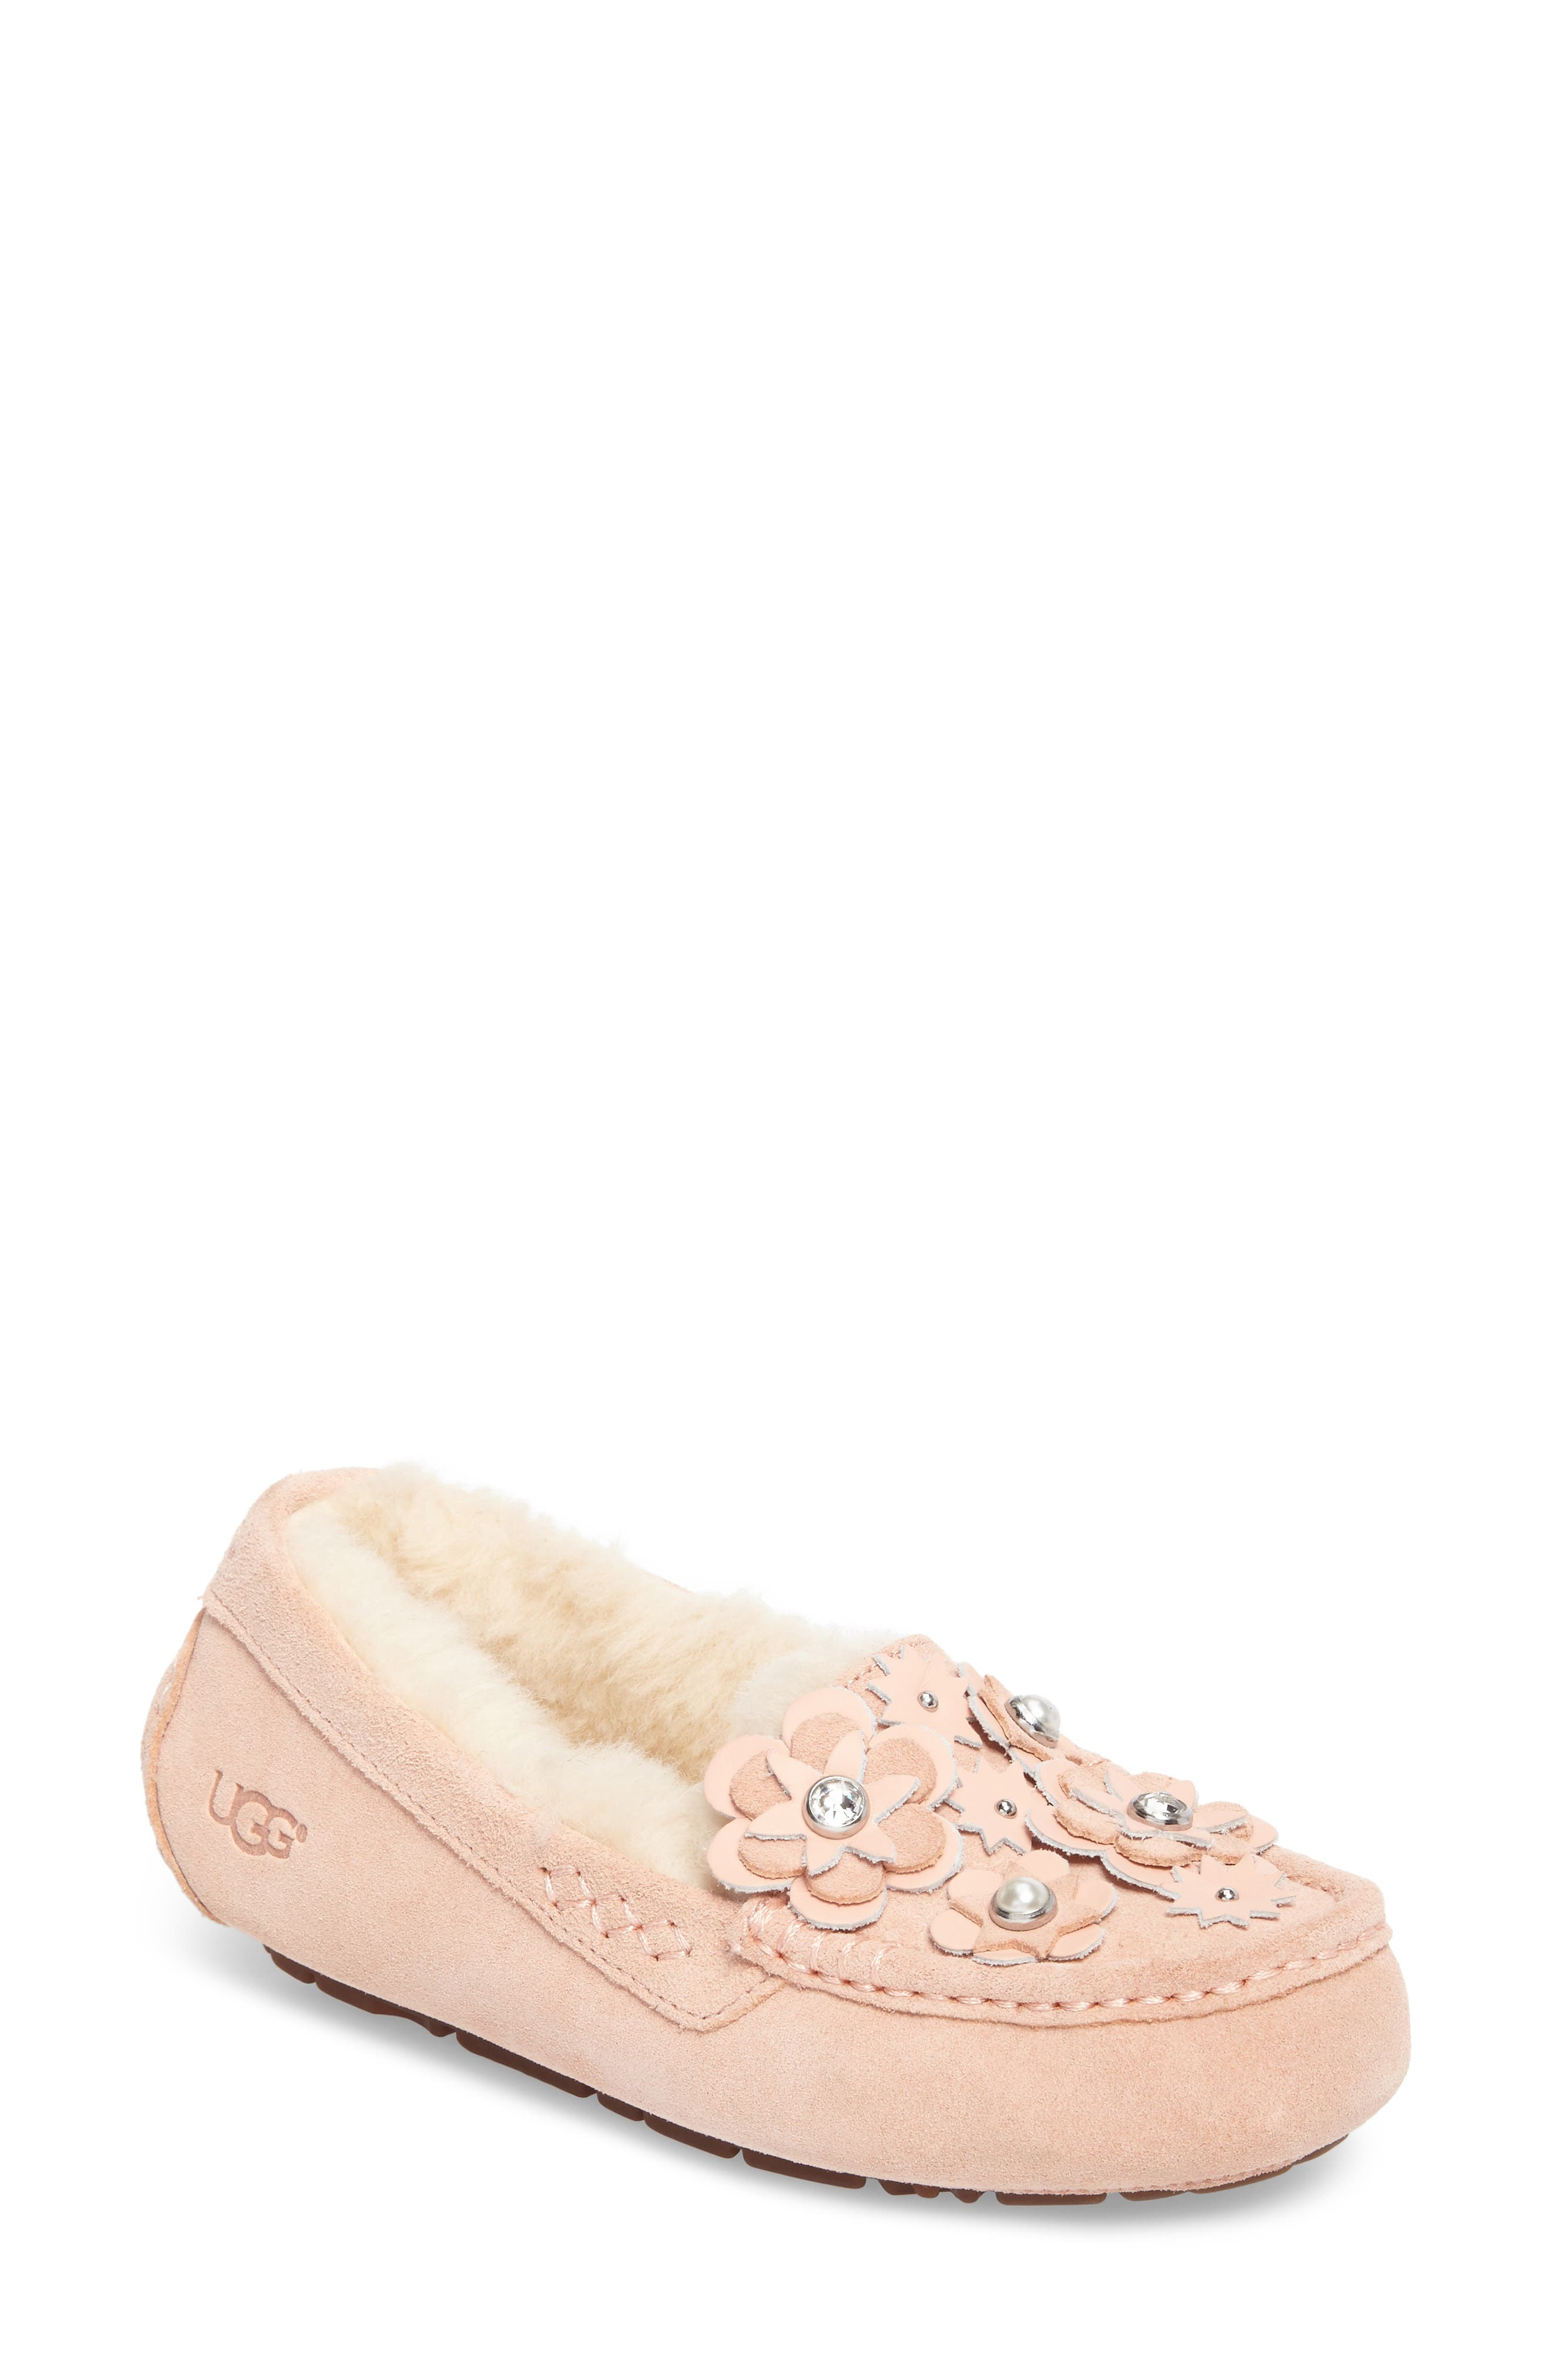 Alternate Image 1 Selected - UGG® Ansley Petal Water Resistant Slipper (Women)